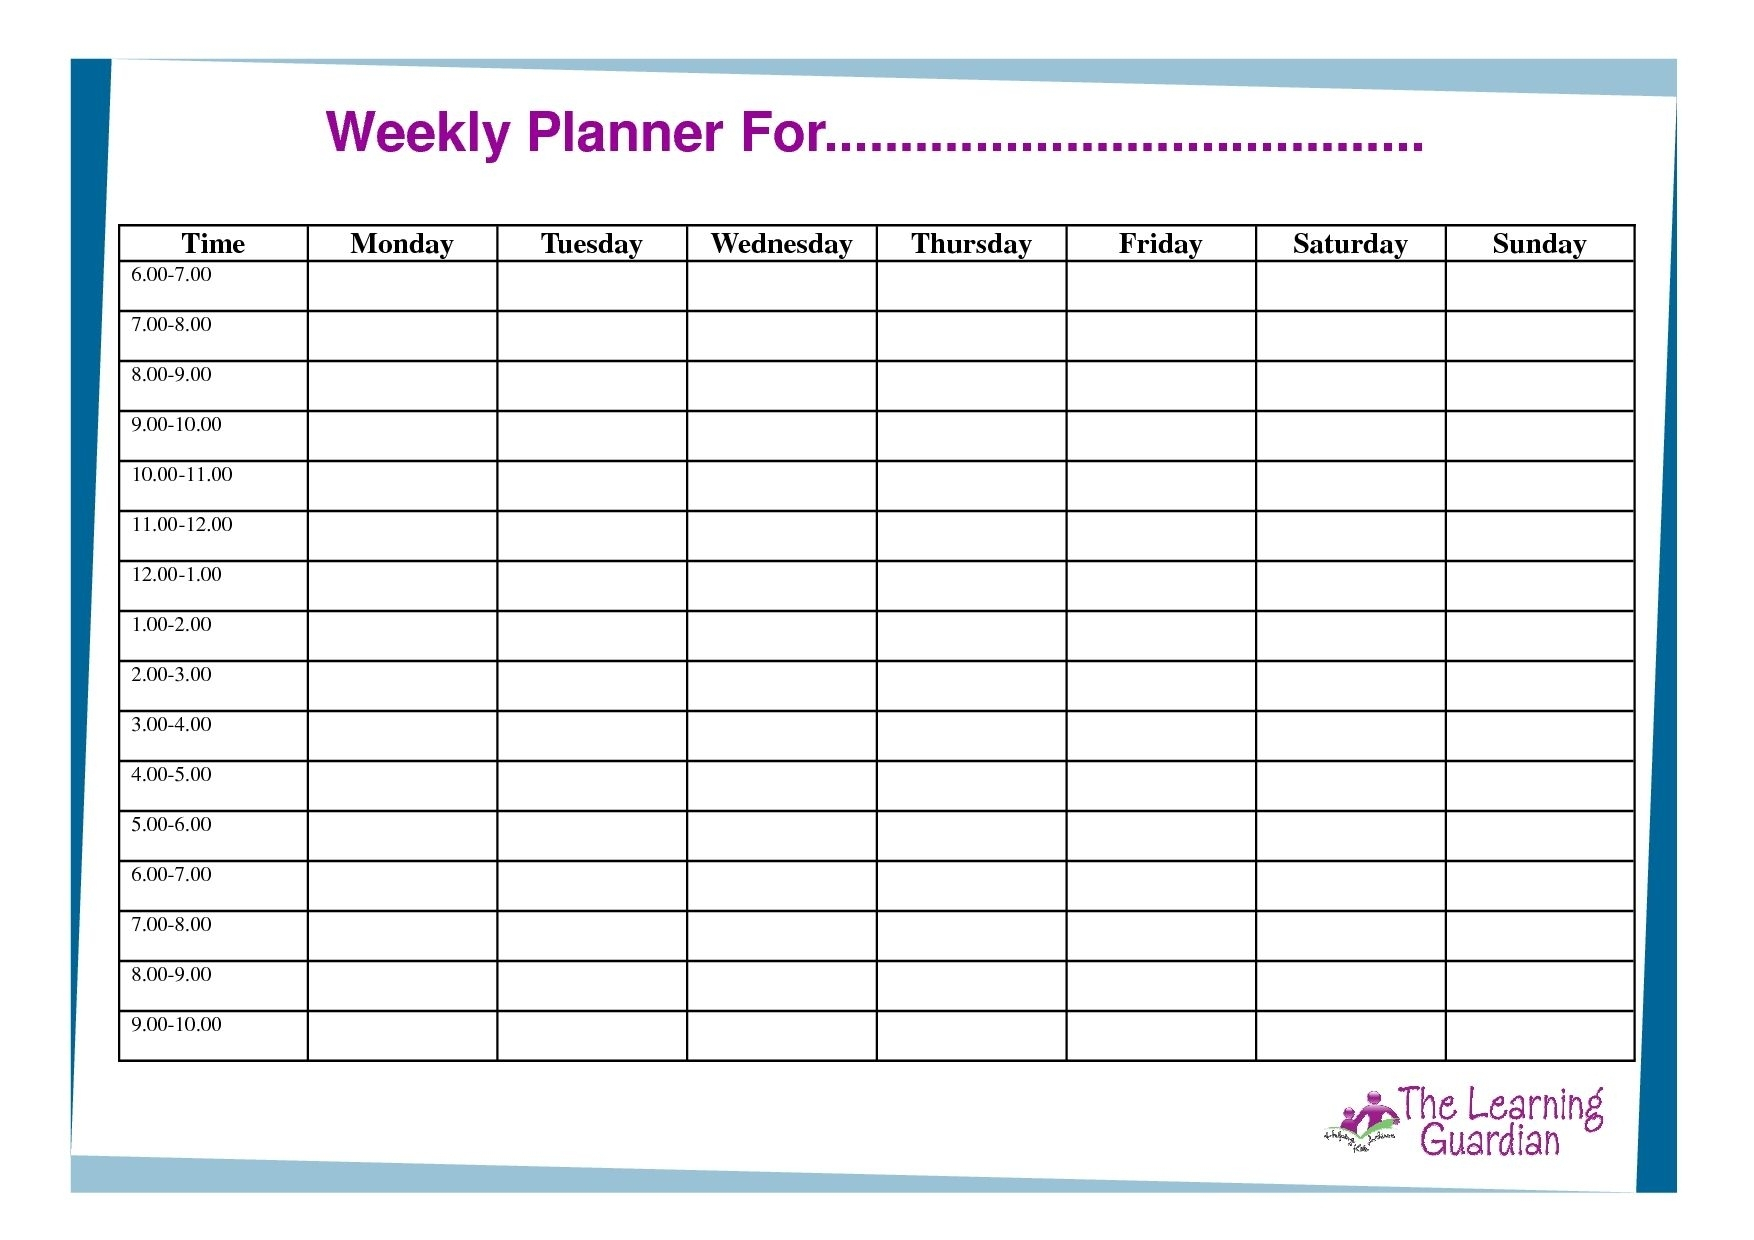 Free Printable Weekly Calendar Templates Planner For Time Incredible for Printable Weekly Calendar Template